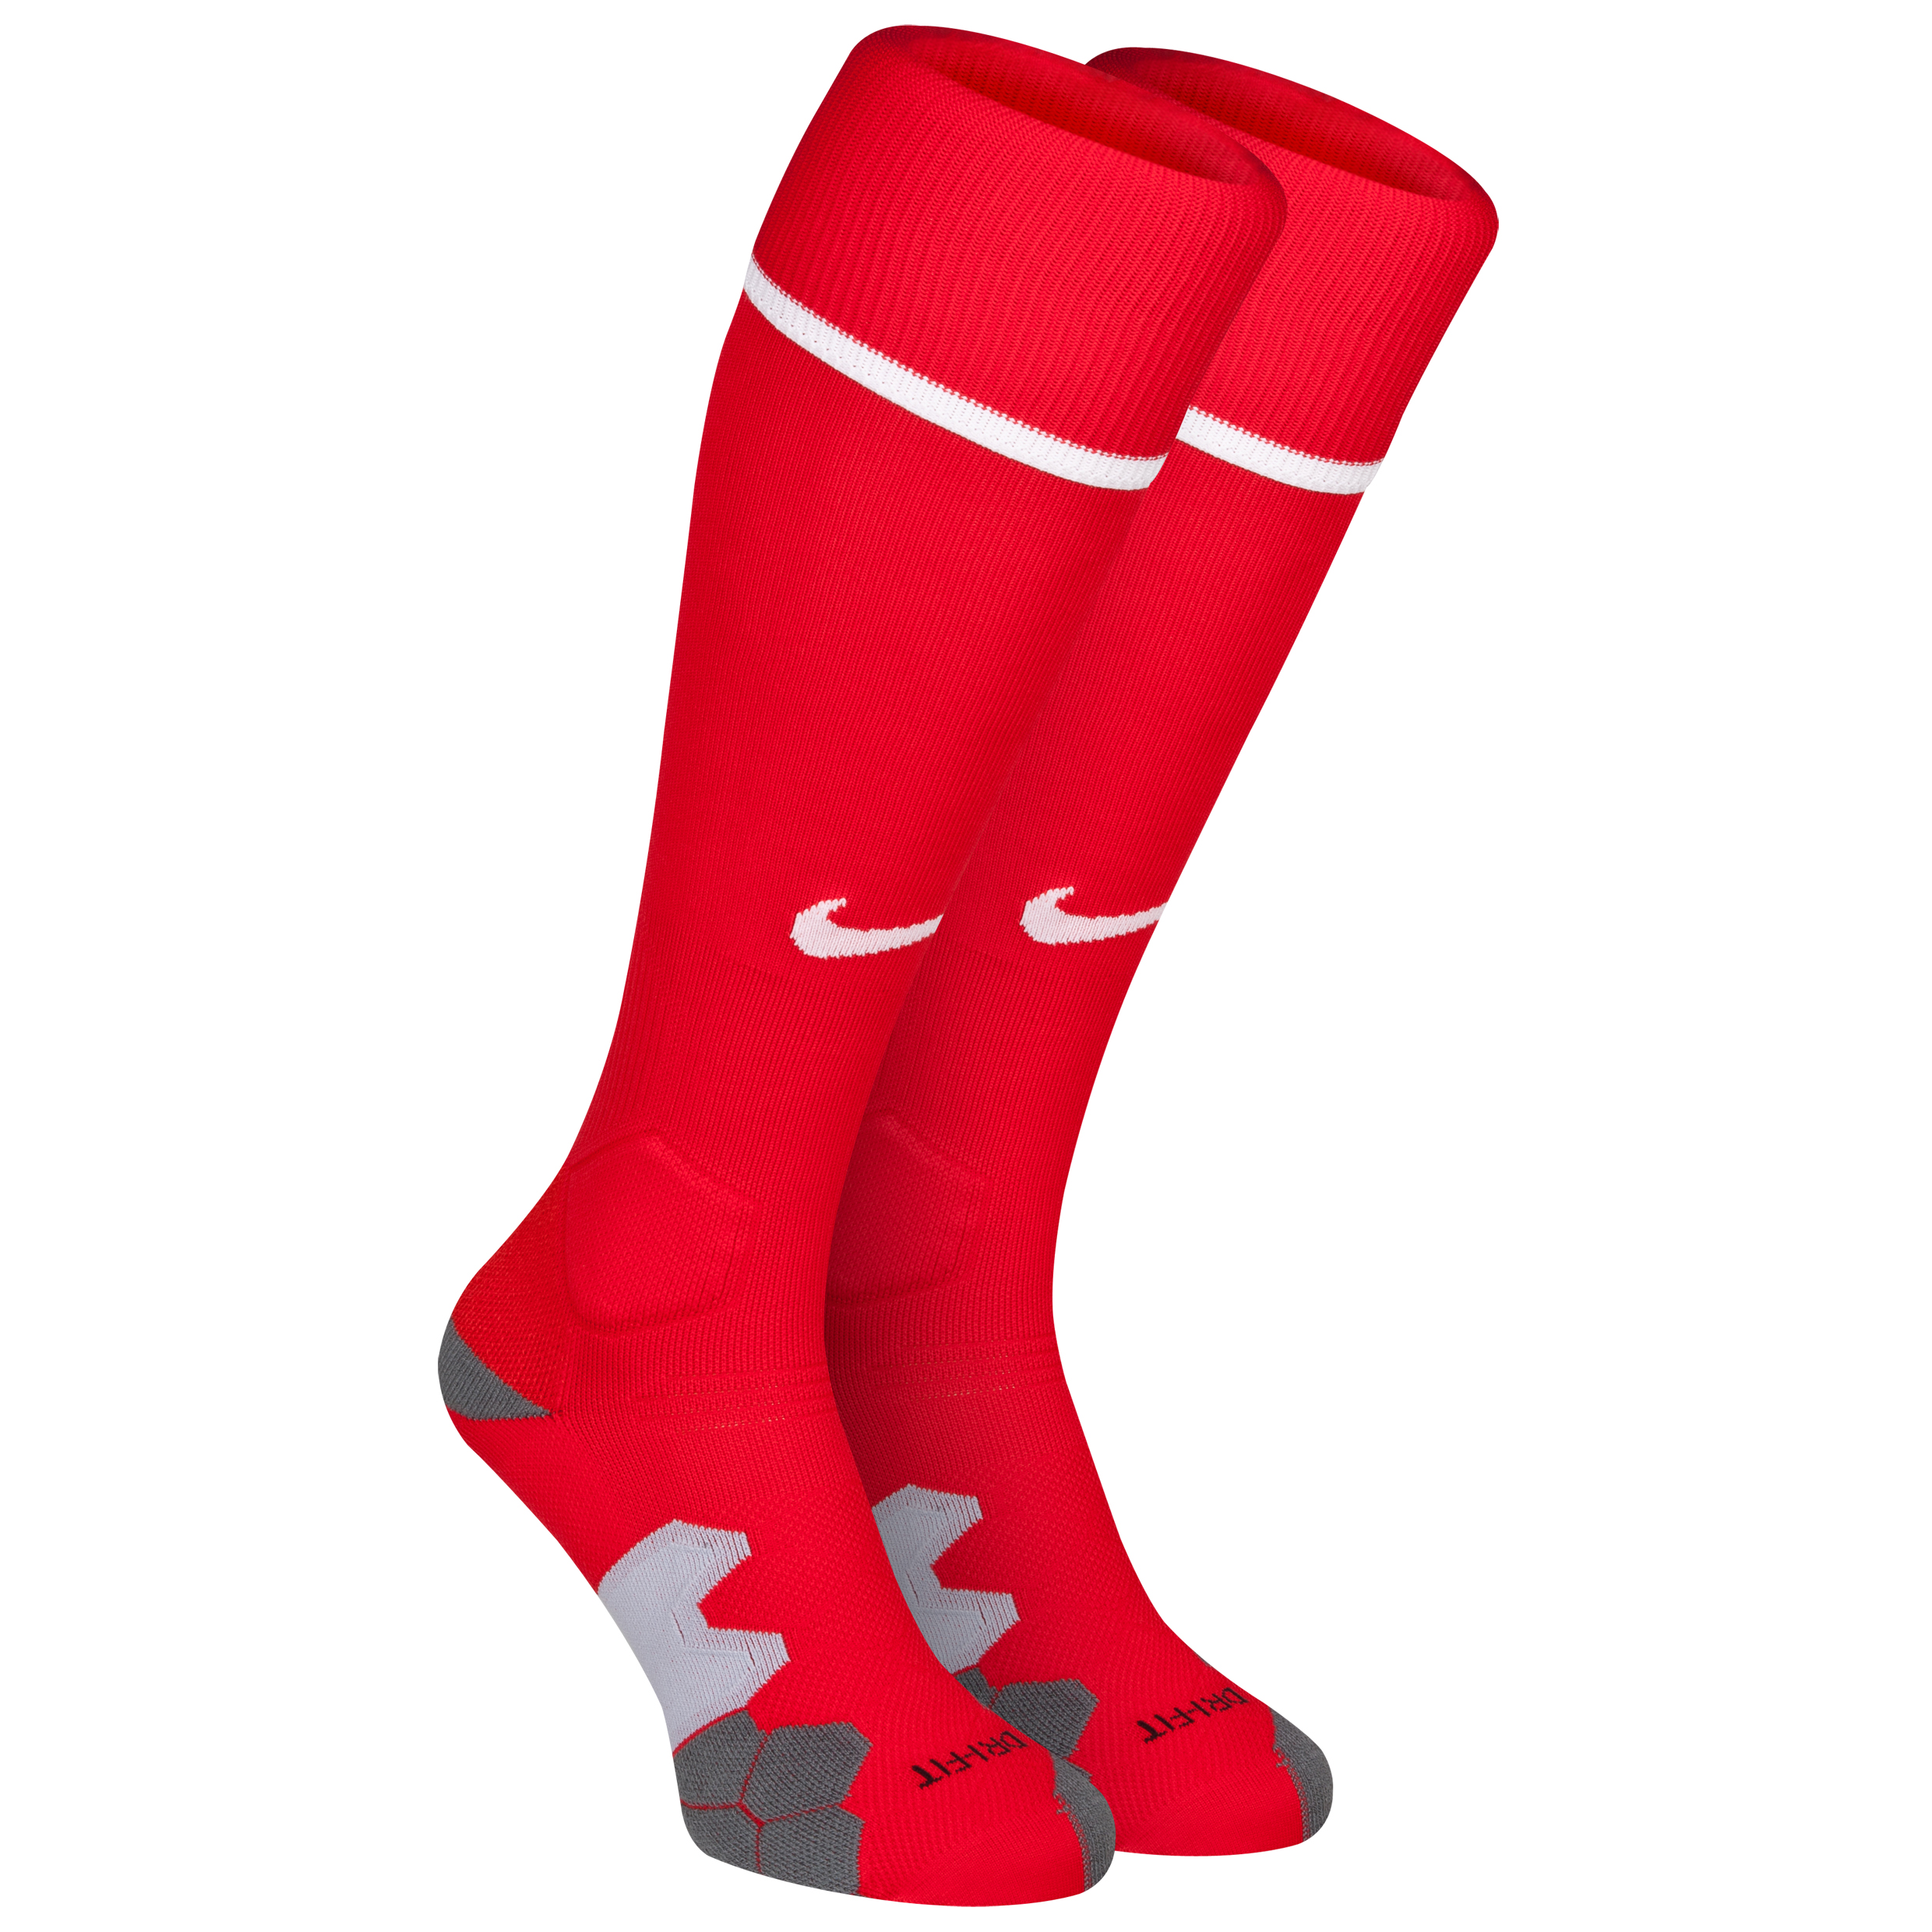 England Away Sock 2013/14 Red